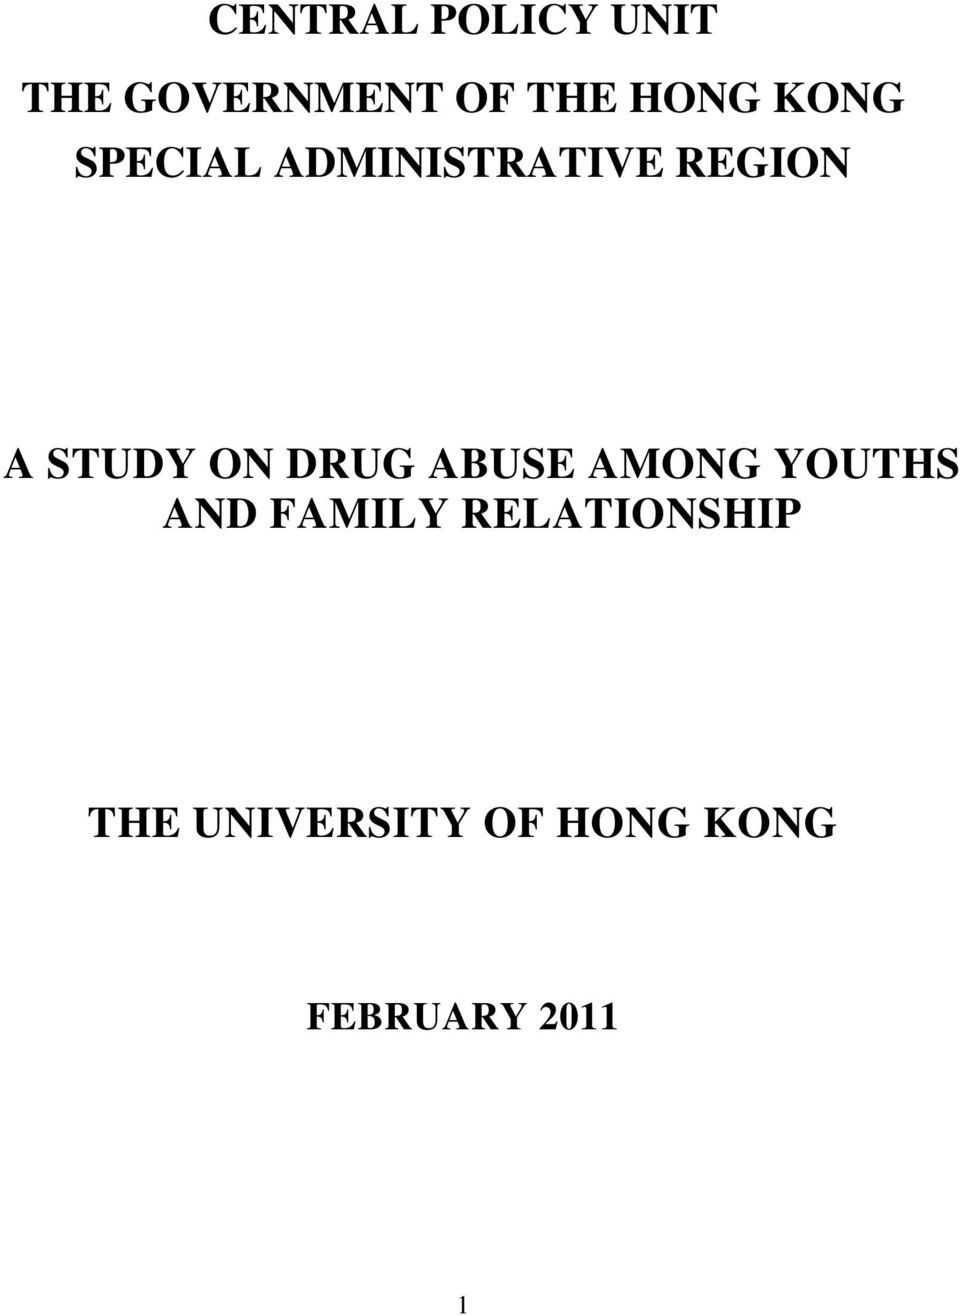 STUDY ON DRUG ABUSE AMONG YOUTHS AND FAMILY